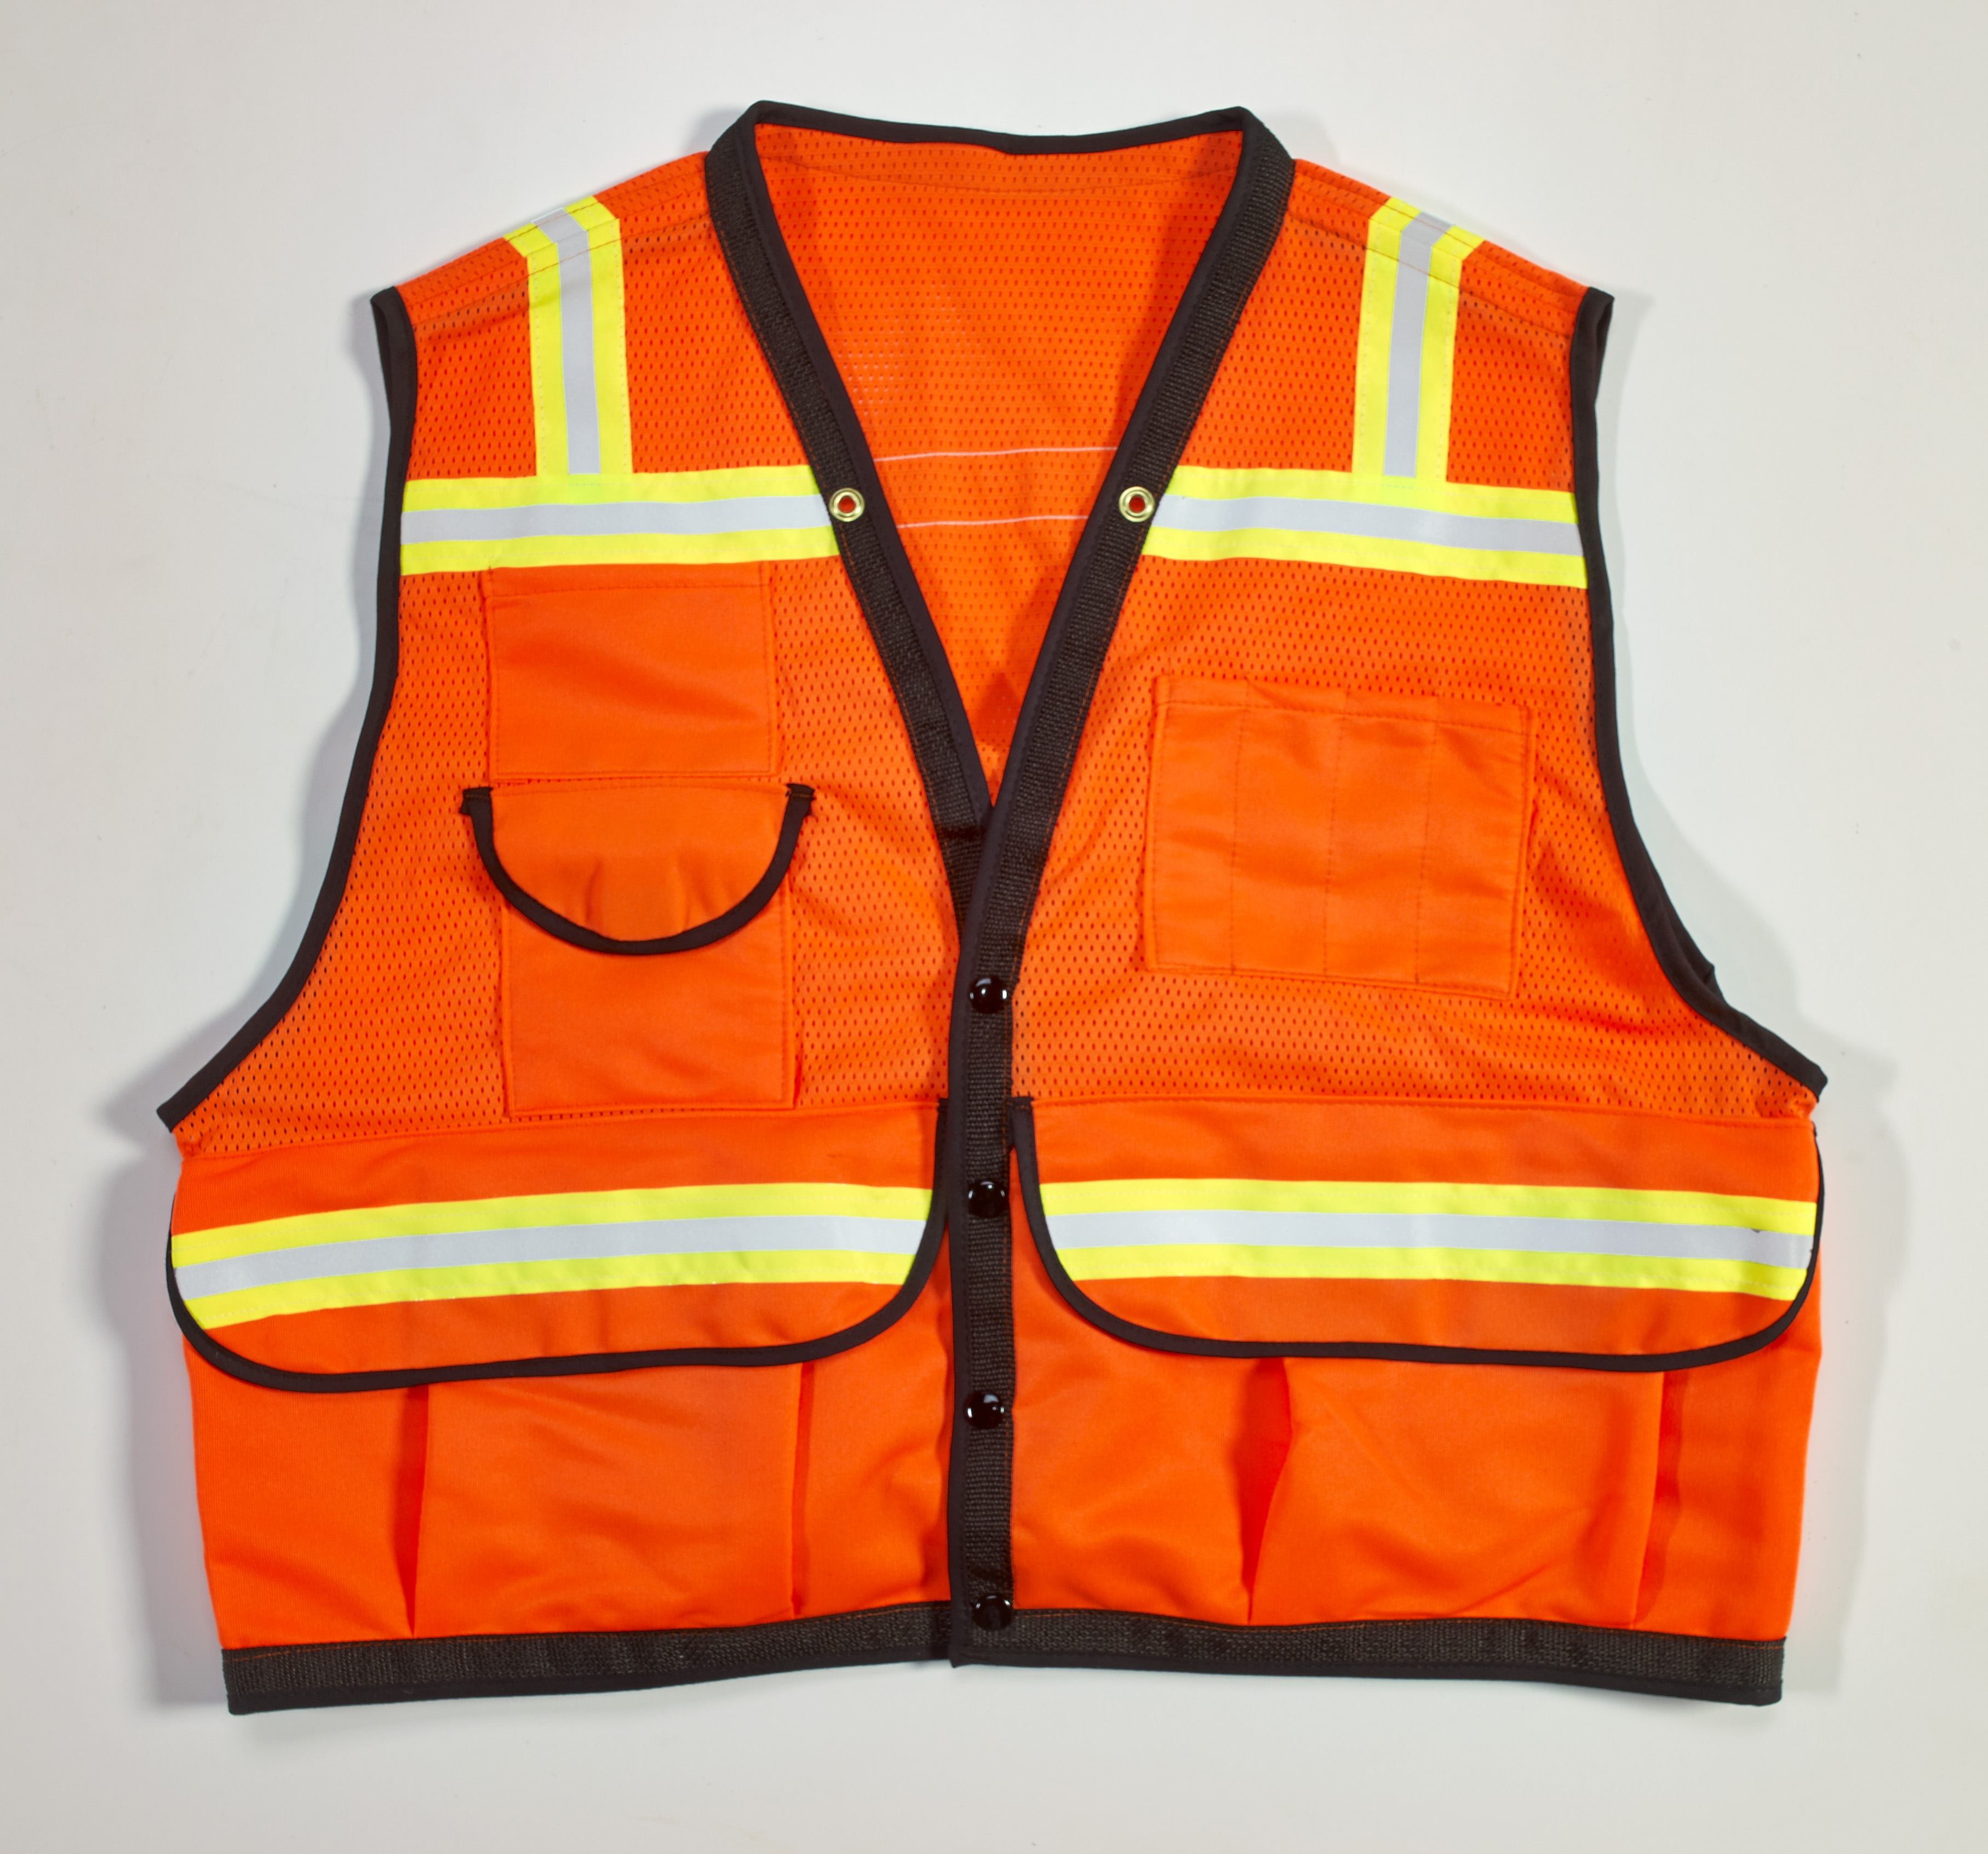 Mutual High Visibility Mesh Super Deluxe Surveyor Vest wi...